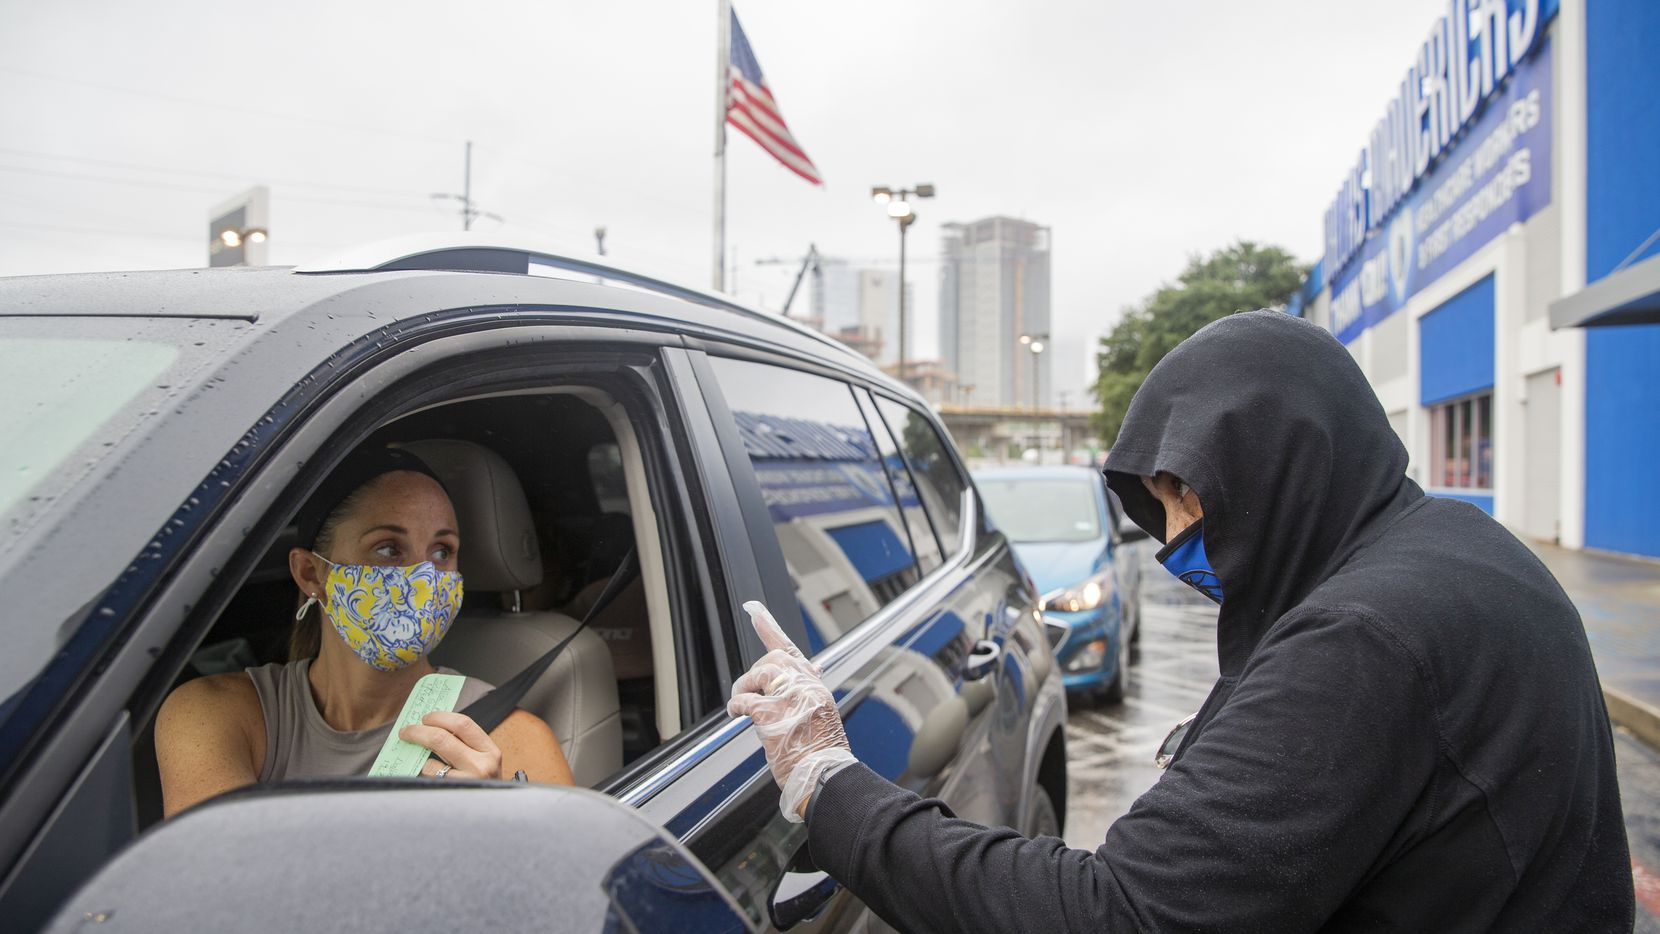 In this file photo, Alice Rice (left) finishes registering to vote with the help of Yvette Simmons at a Drive-Thru Voter Registration Event hosted by the Dallas Mavericks on Tuesday, Sept. 22, 2020 at the Dallas Mavericks Headquarters in Dallas.